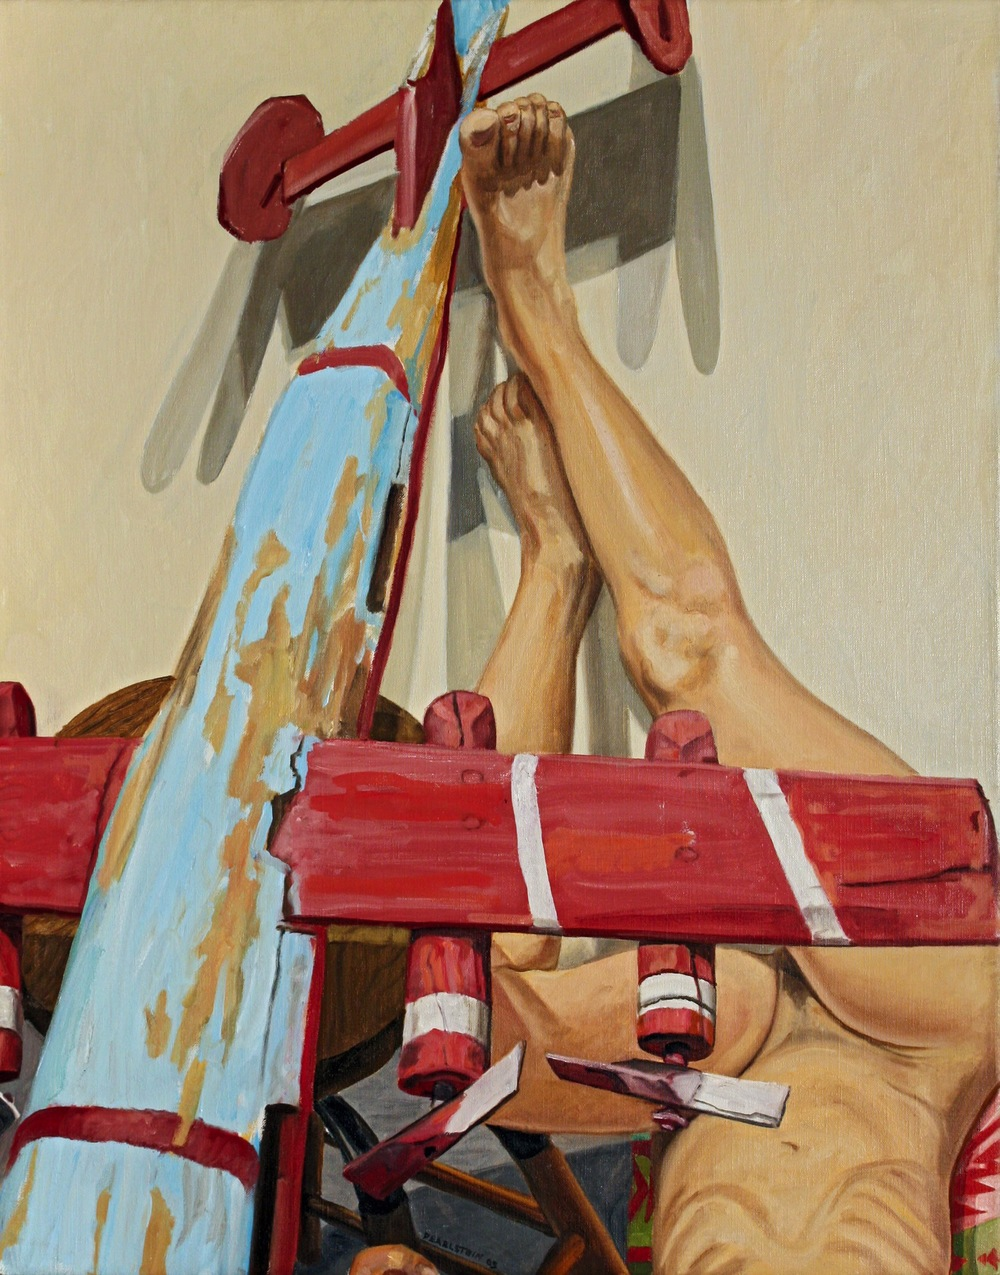 MODEL WITH WHIRLIGIG WAR PLANE , 2009 Oil on canvas 28 x 22 inches